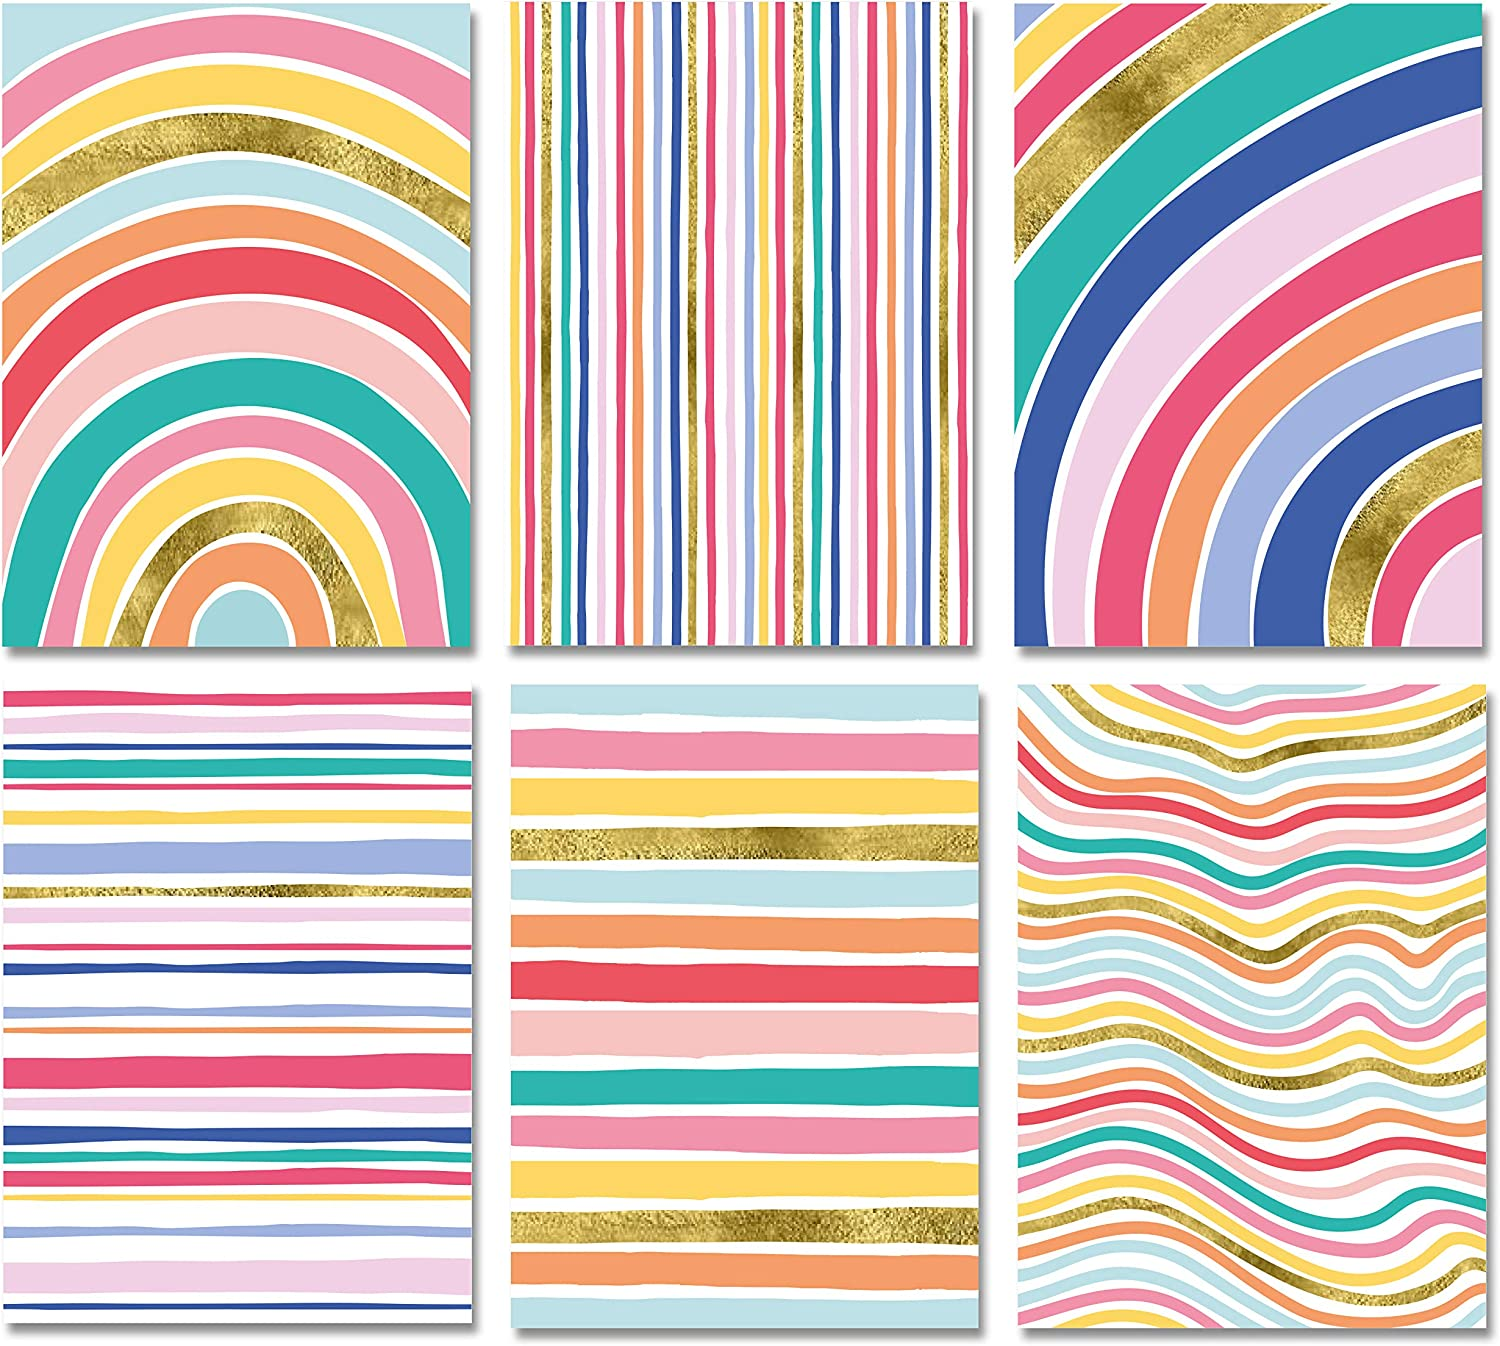 Blank Cards with Envelopes 48 Striped Gold Foil Blank Note Cards with Envelopes Blank Notecards Stationary Set for Personalized Greeting Cards-4x5.5 6 Assorted Cards for All Occasions